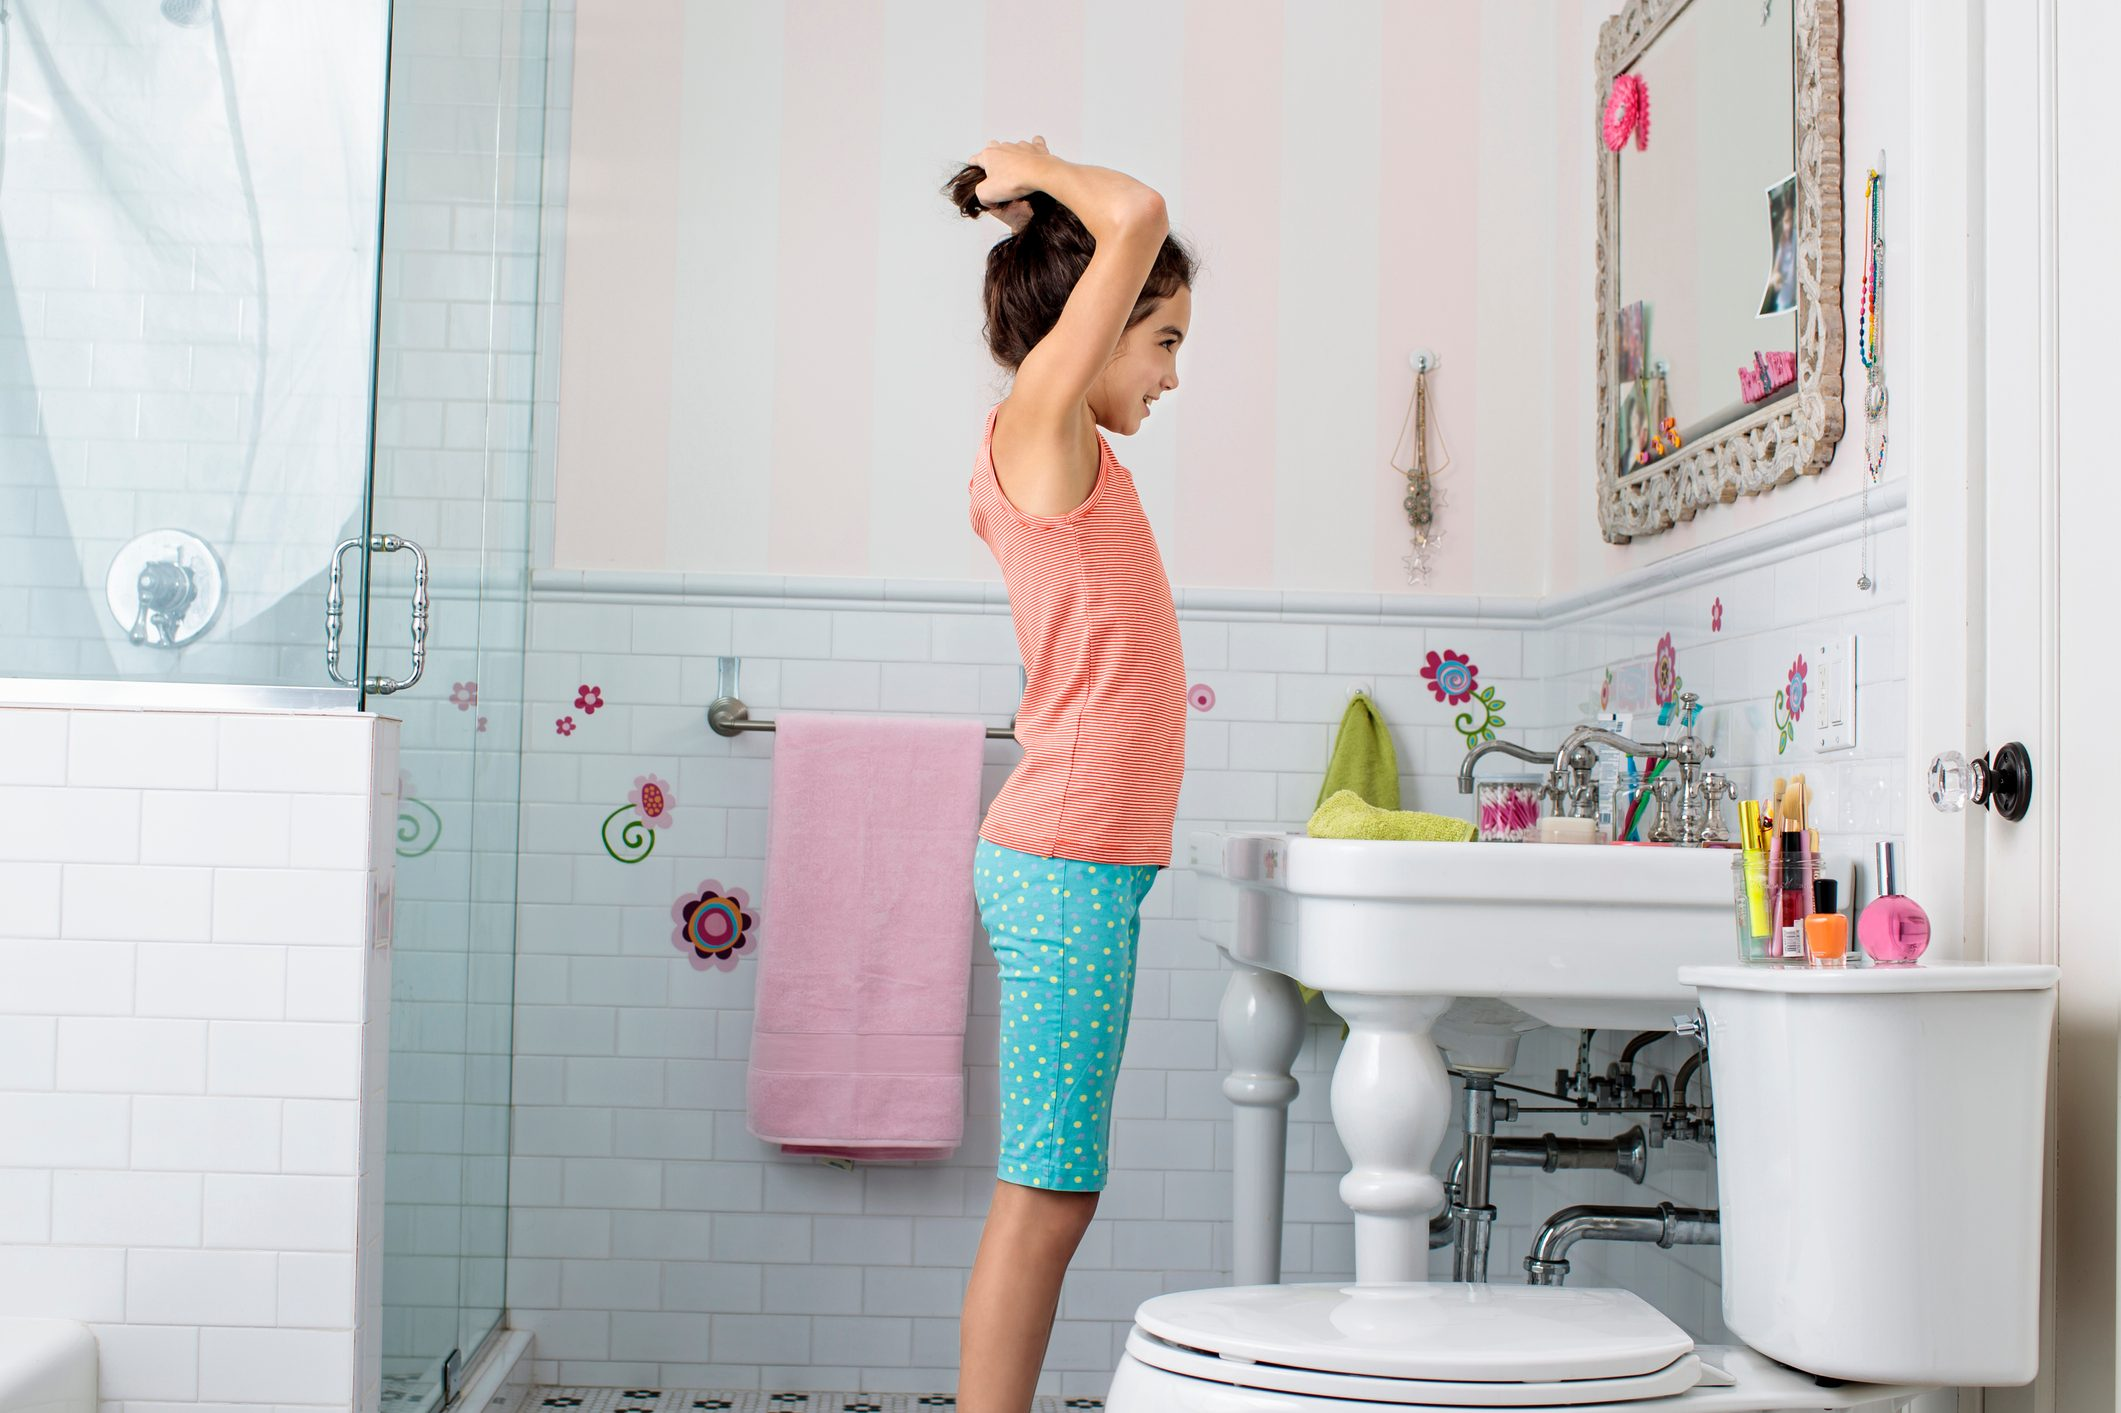 young girl fixing her hair in the bathroom mirror